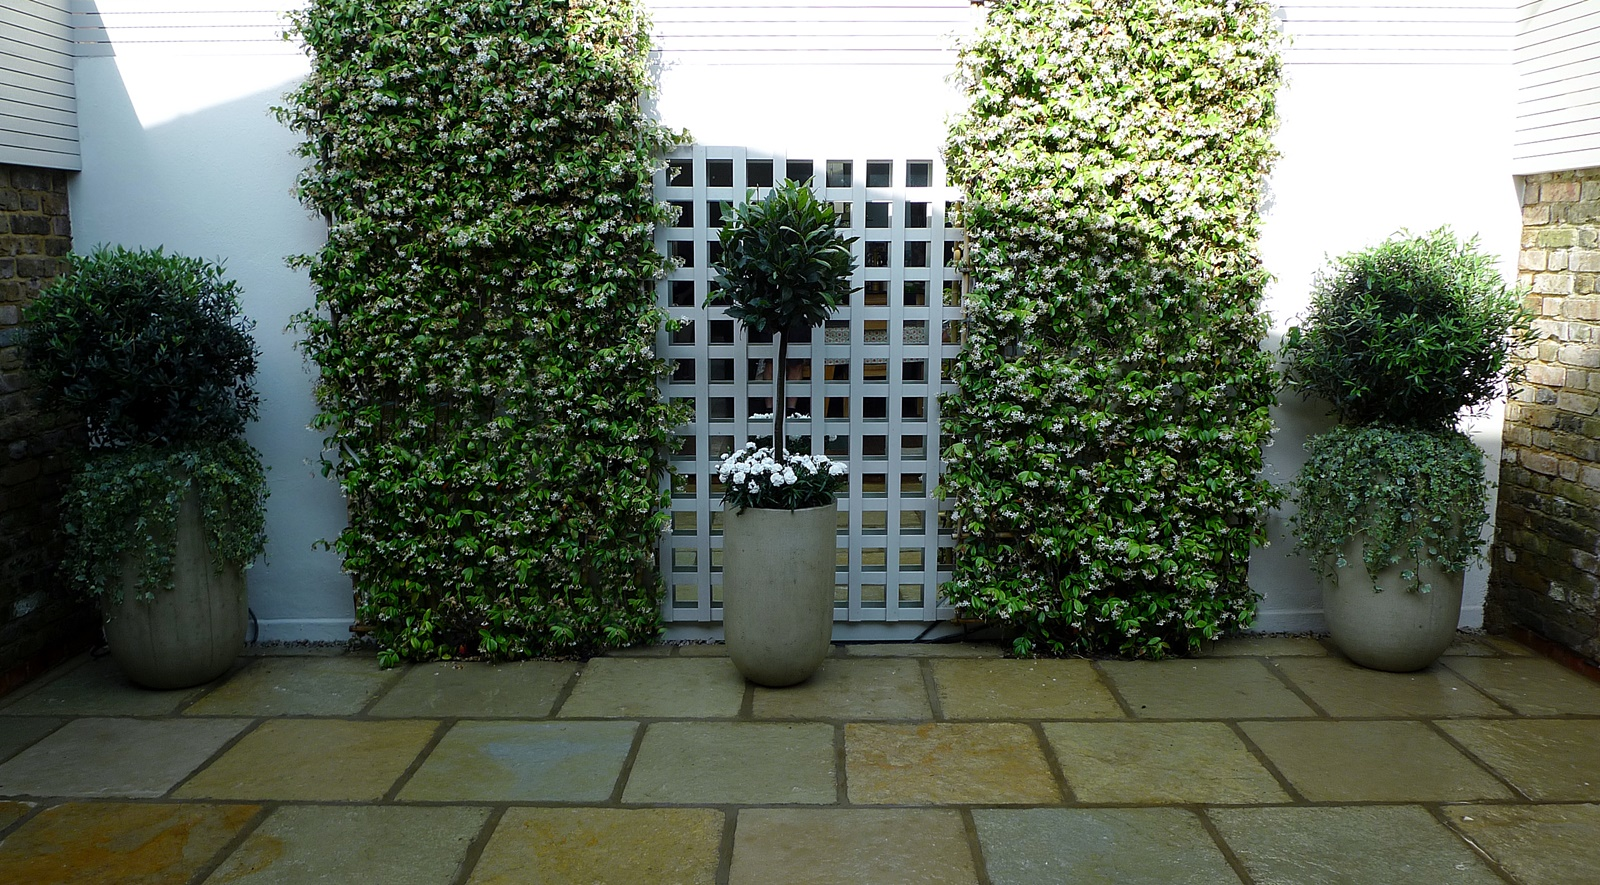 Courtyard minimalist contemporary garden design and designer cheam richmond london